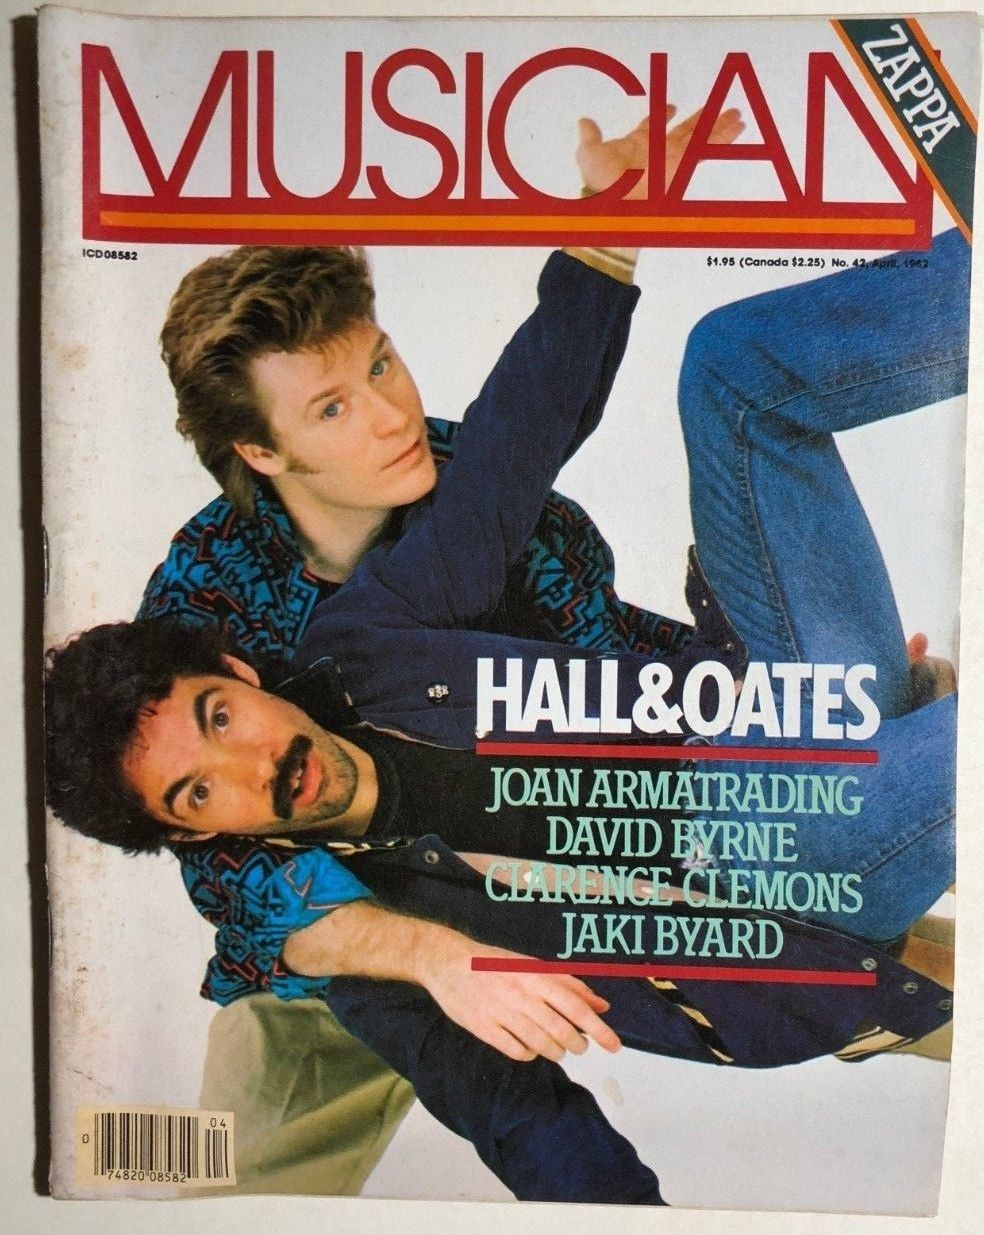 Primary image for MUSICIAN Magazine #42 April 1982 Hall & Oates, Frank Zappa